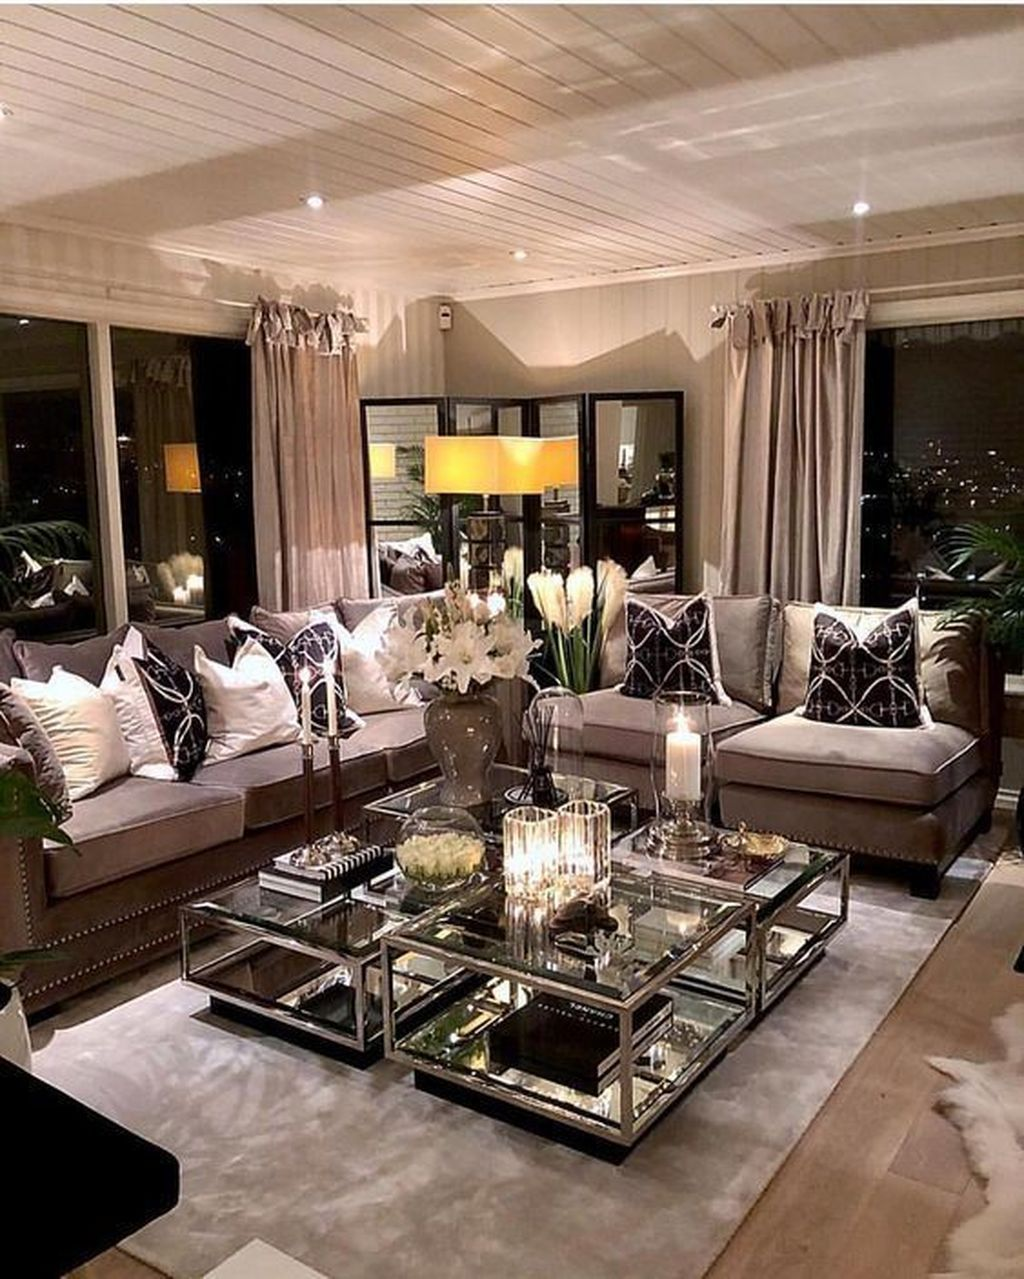 Modern Glam Living Room Decorating Ideas 19: 20+ Attractive Small Living Room Decor Ideas With Perfect